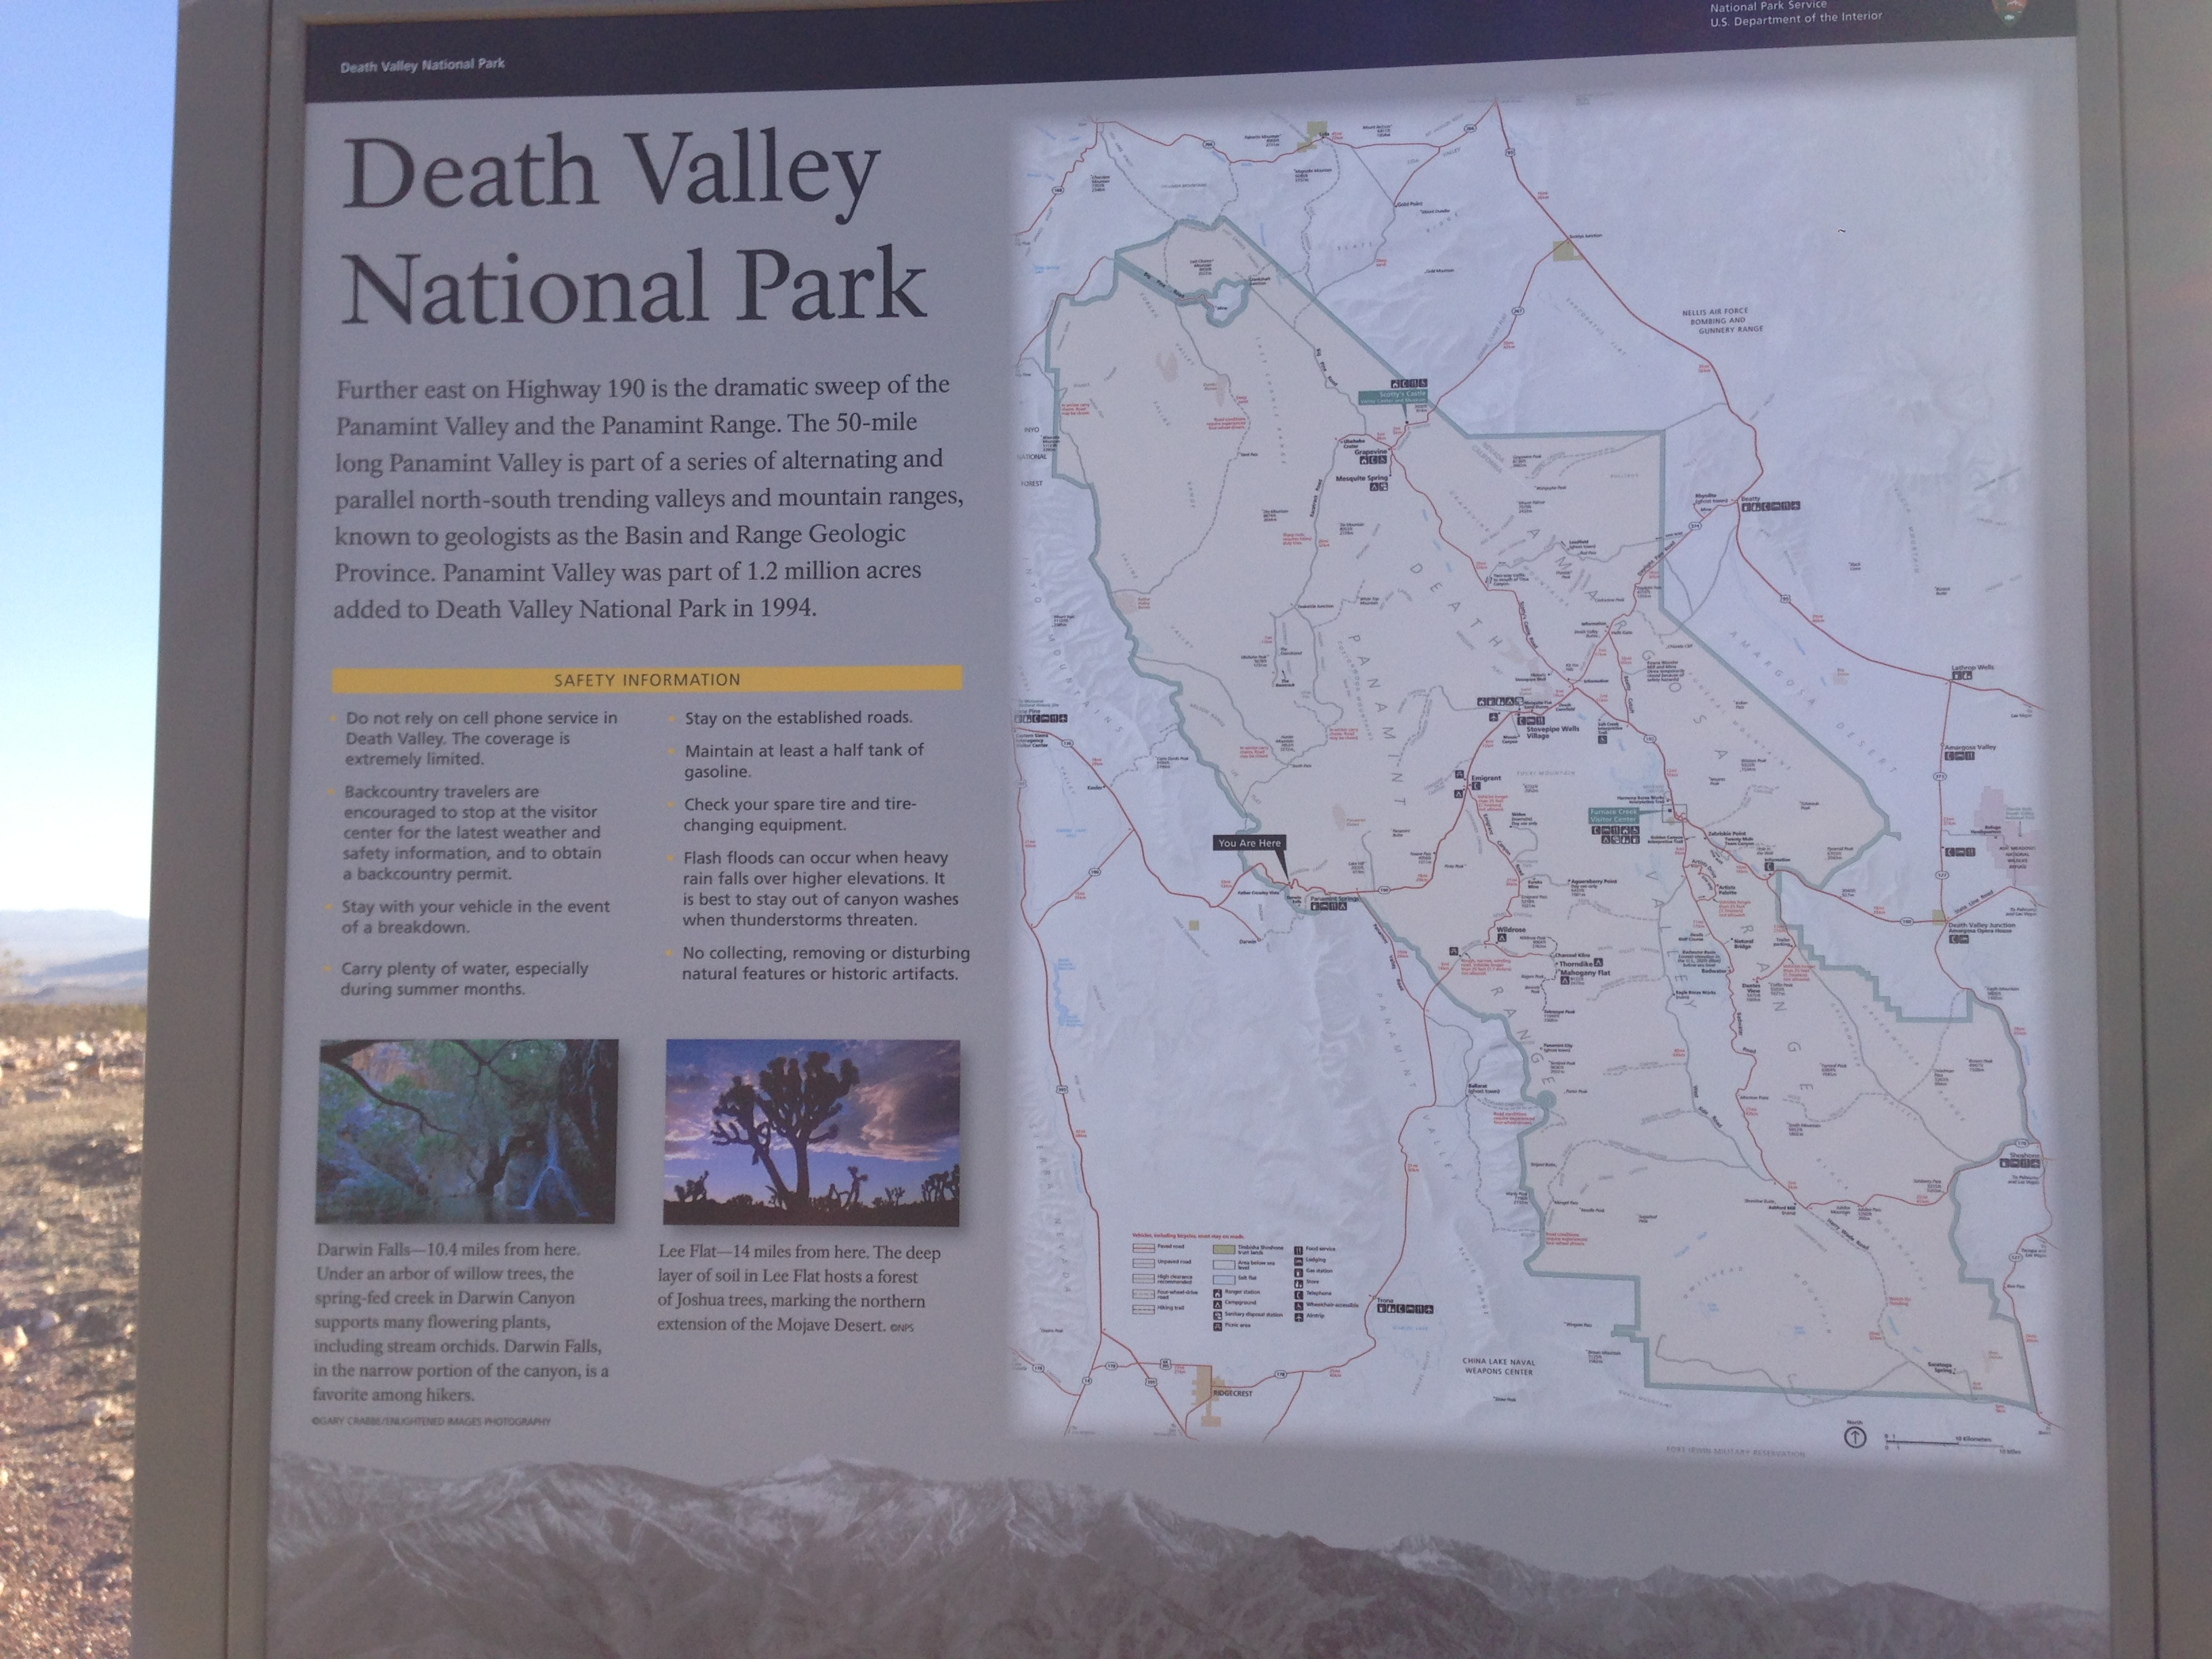 File:2013-09-20 17 25 35 Death Valley National Park map at